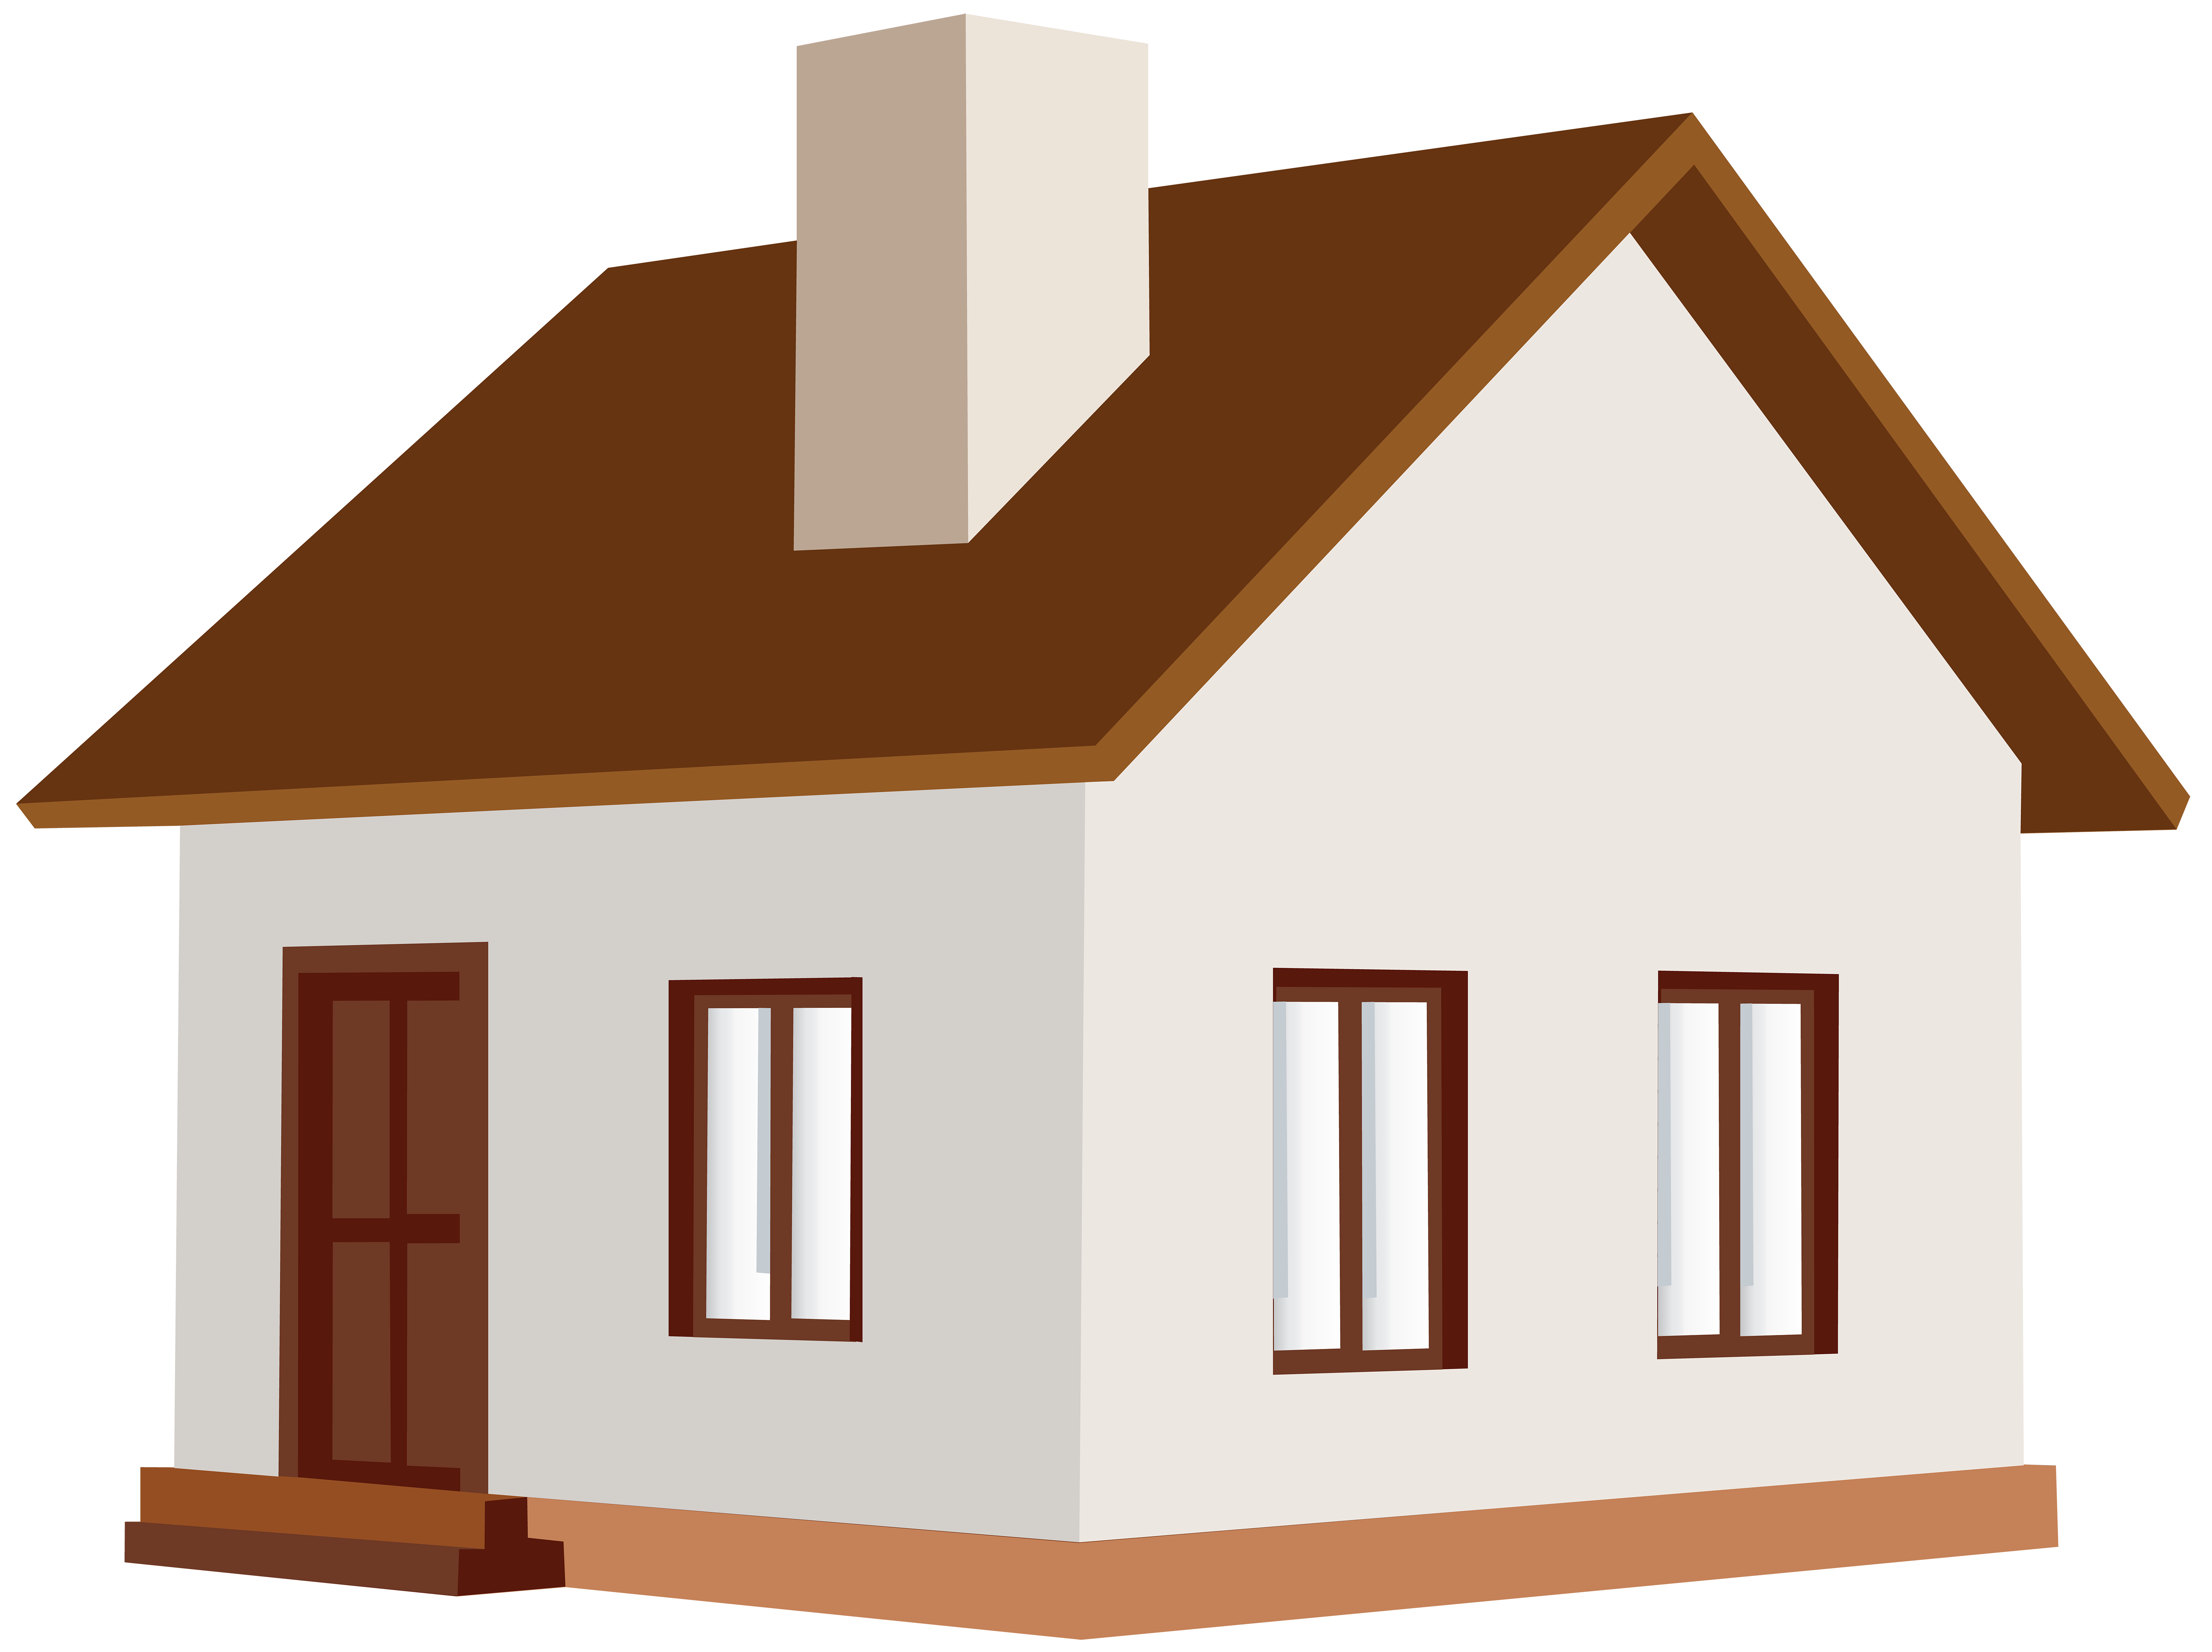 clipart free library House clipart. Png clip art best.